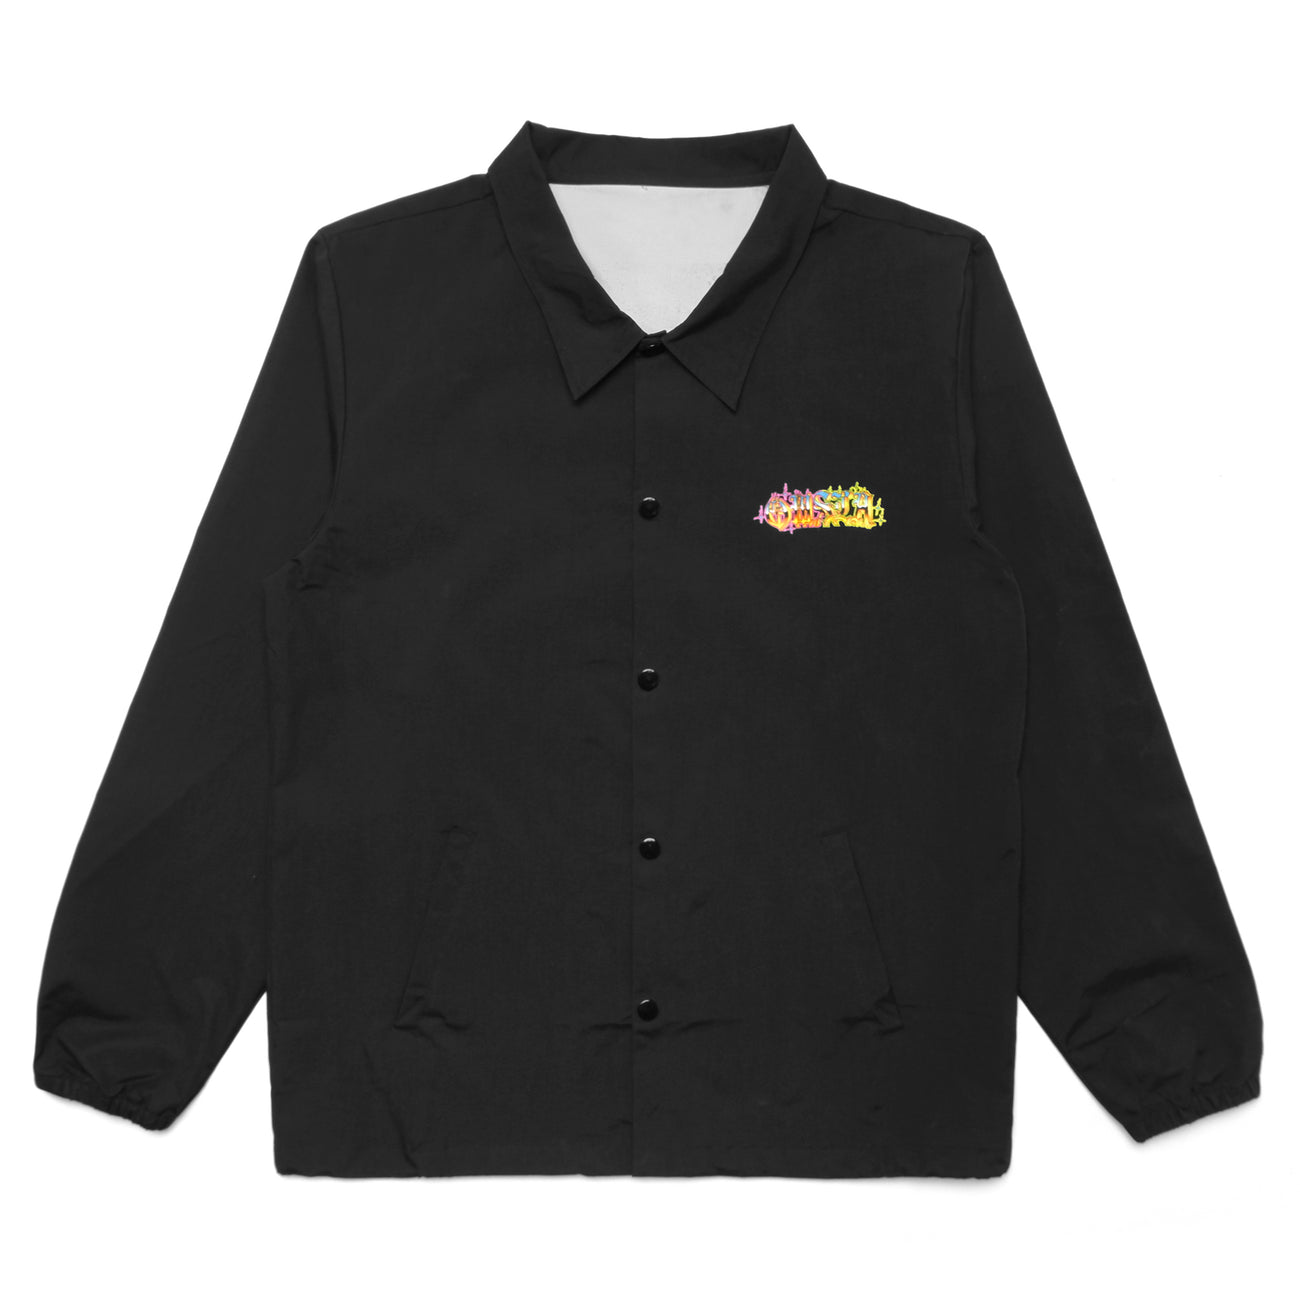 UNLEASHED COACHES JACKET - BLACK